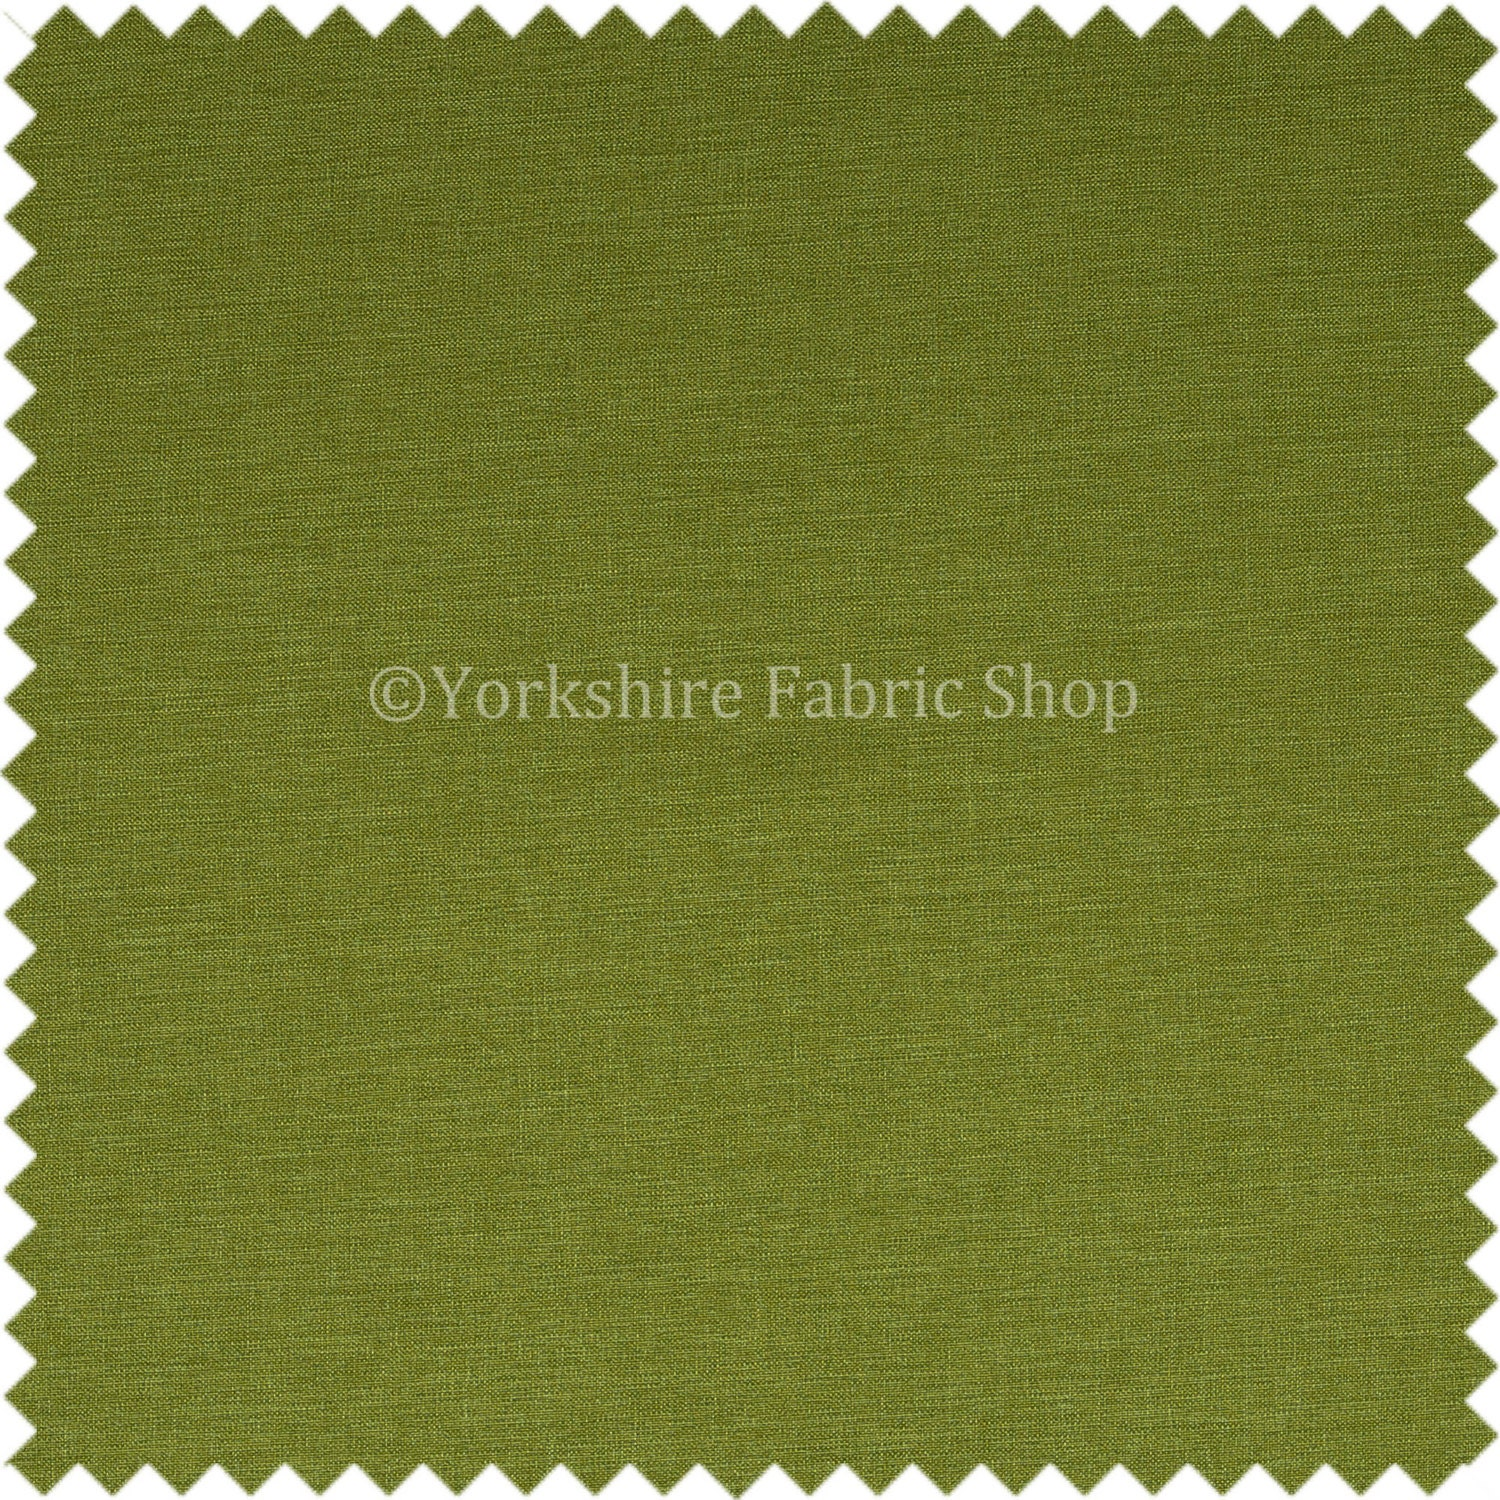 Sold By Yorkshirefabricshop